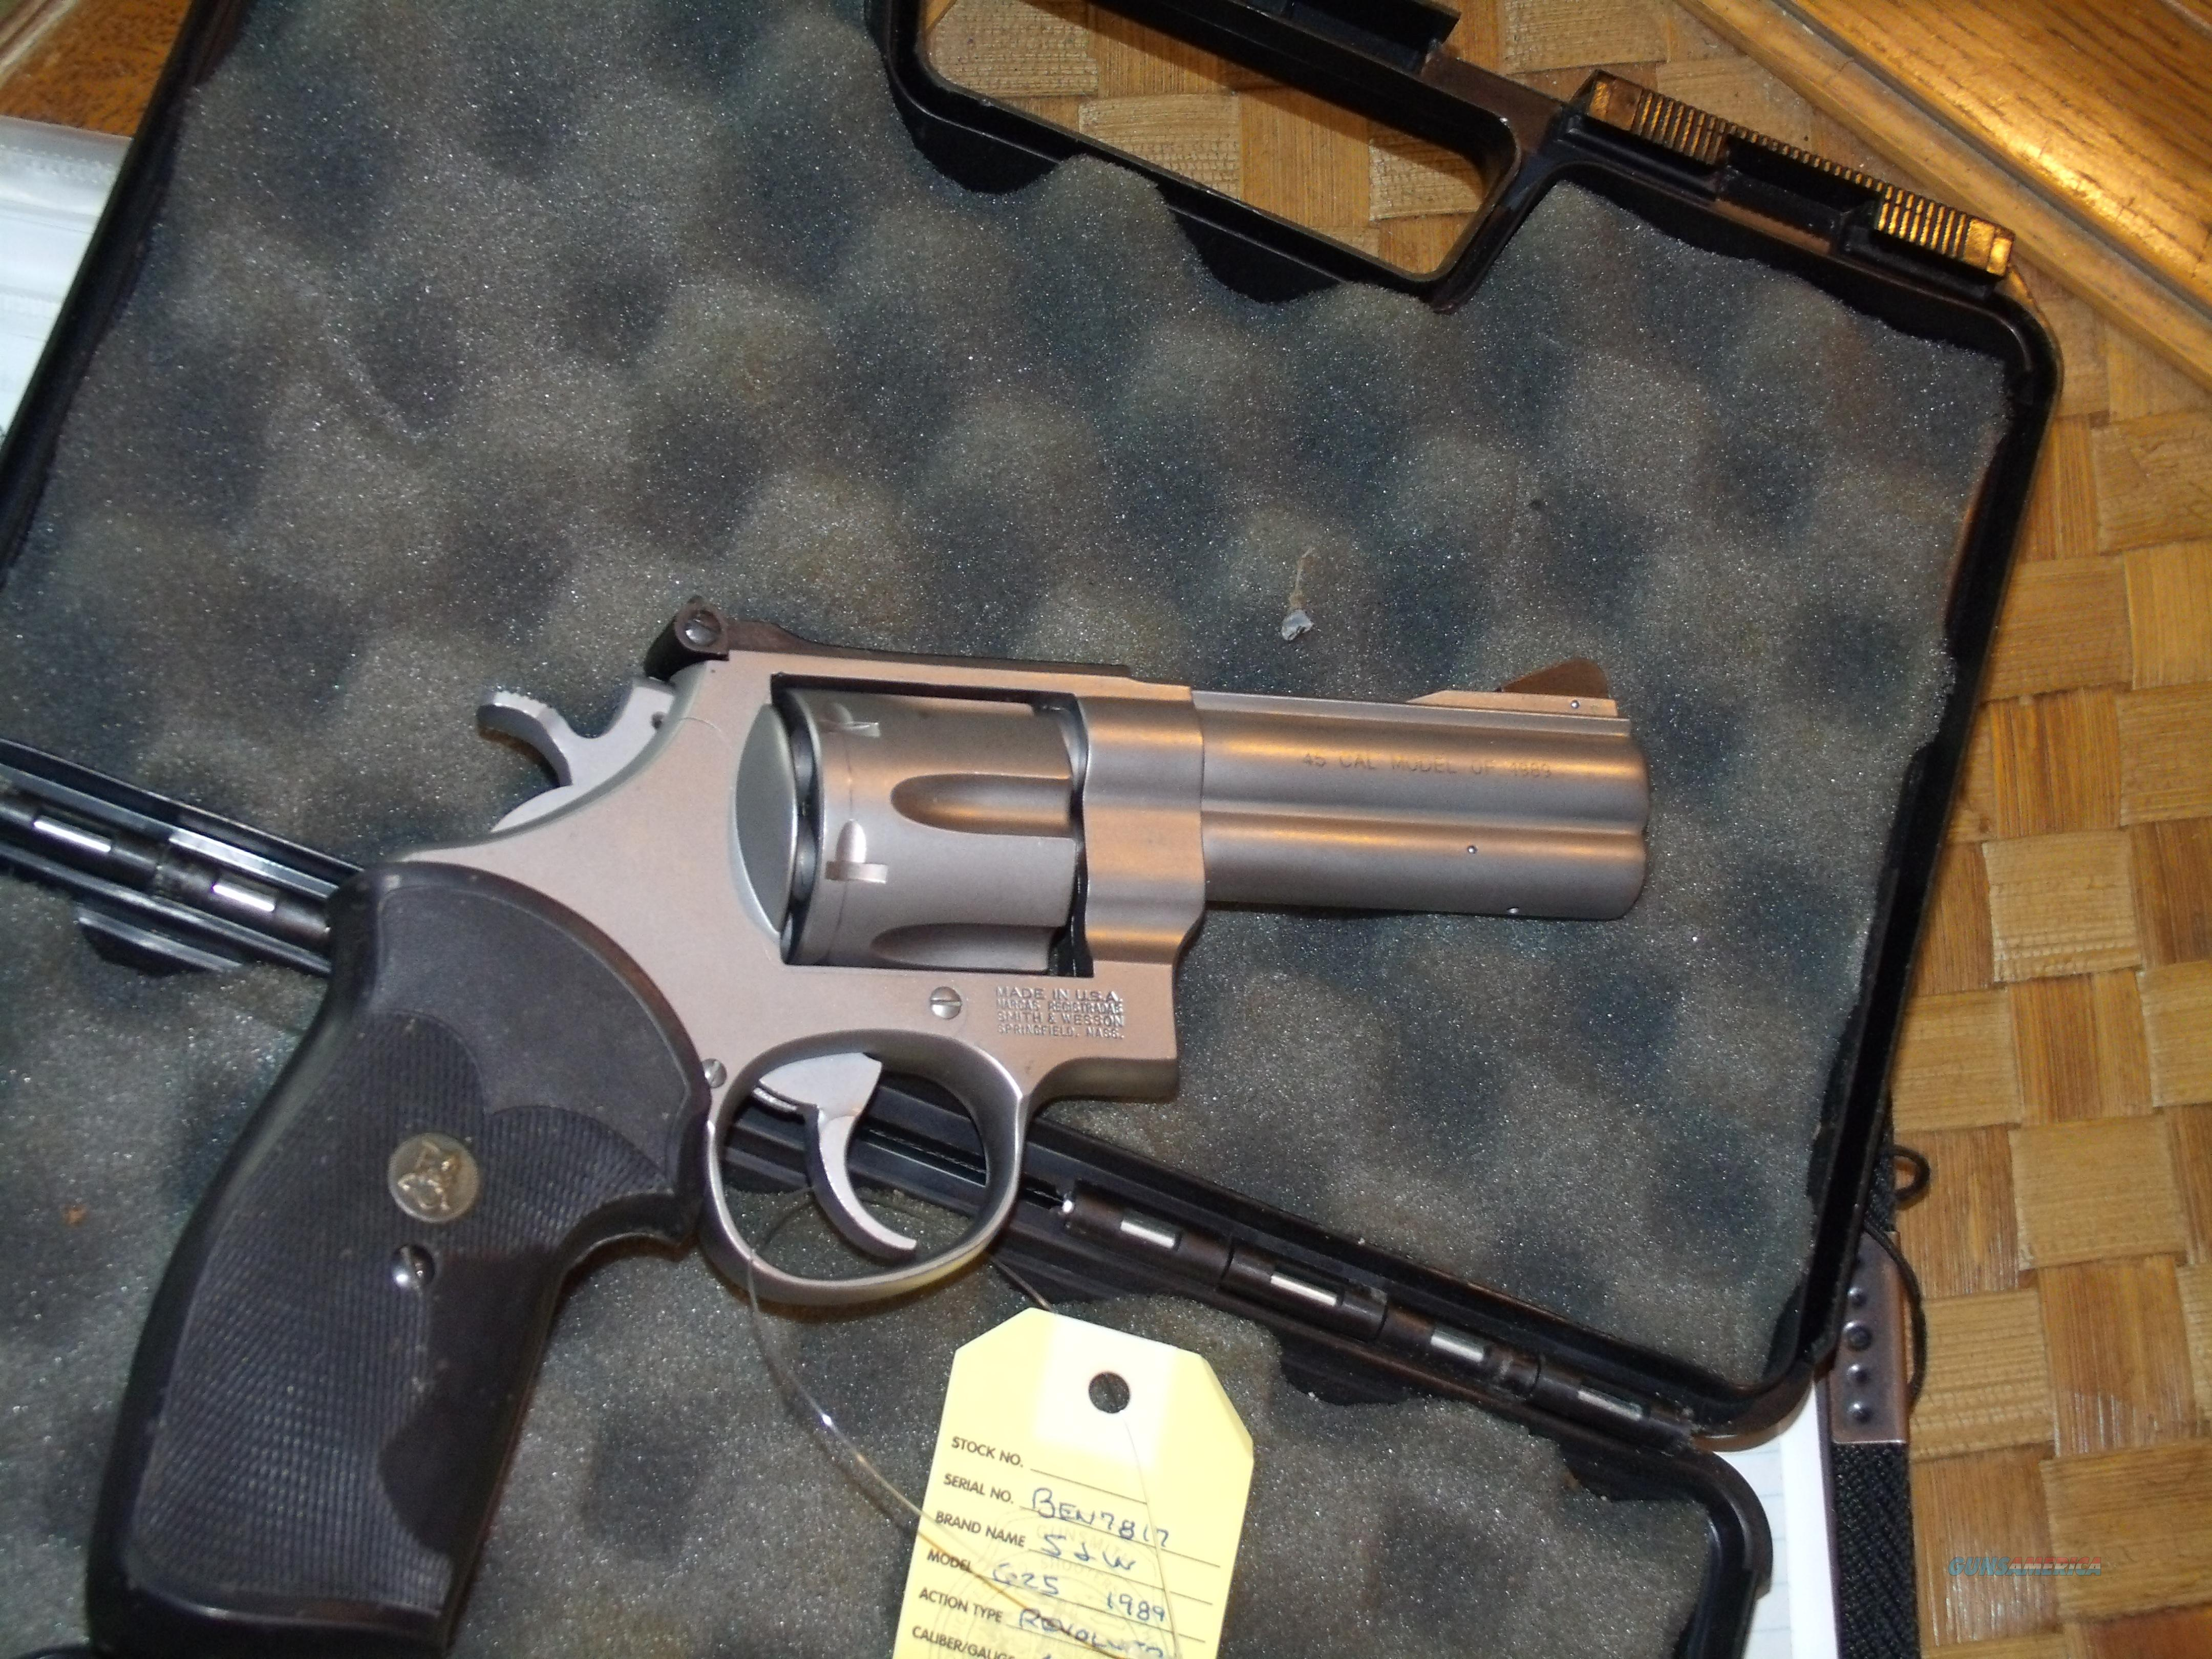 S&W M625 STAINLESS  .45 ACP  Guns > Pistols > Smith & Wesson Revolvers > Full Frame Revolver